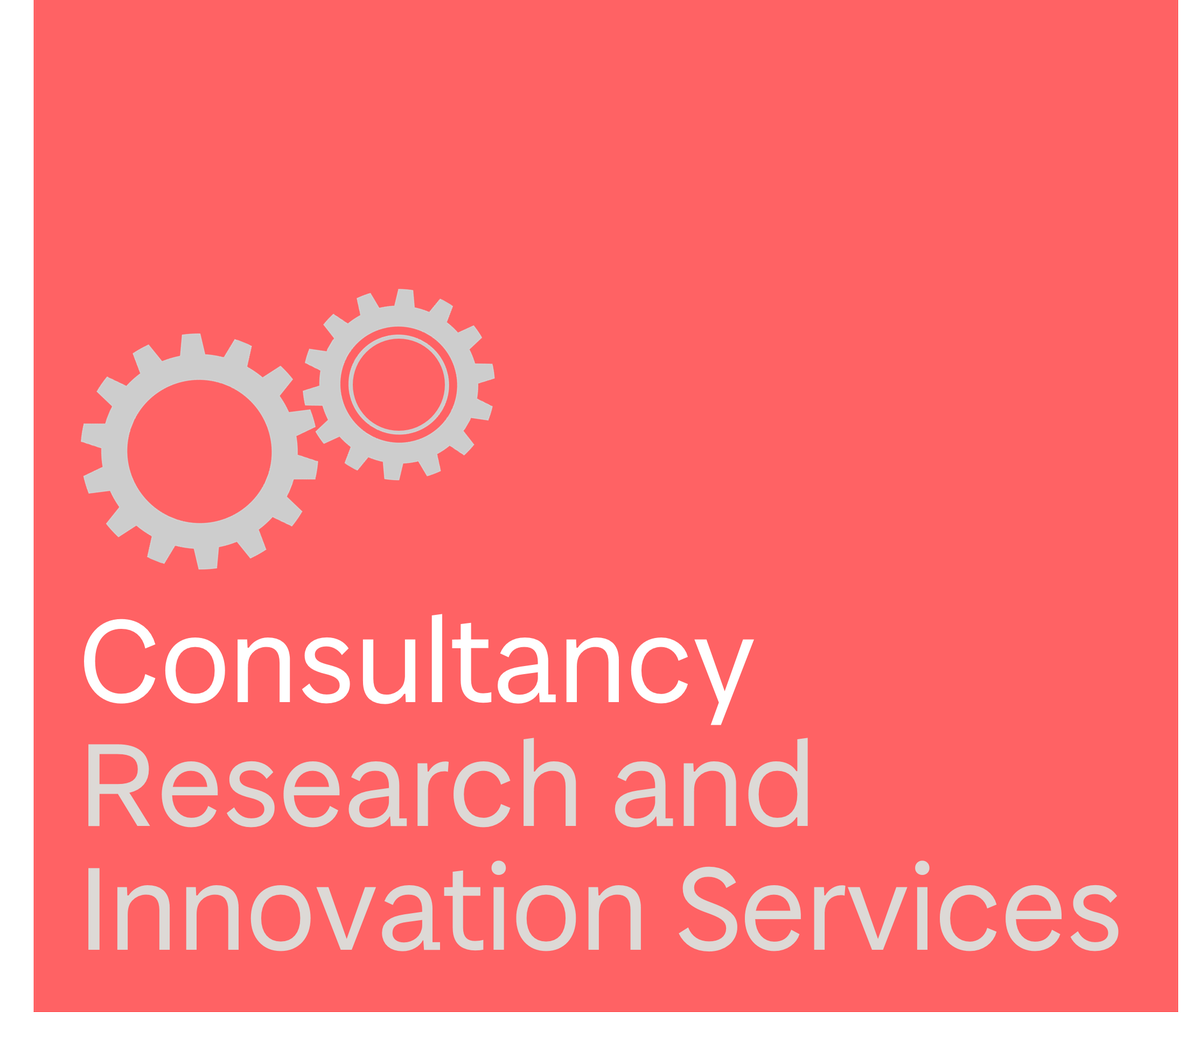 #dundeeuni staff, have you considered consultancy as a way to engage &amp; make impact? Find out more:  http:// uod.ac.uk/2vyhCLD  &nbsp;   #mostinnovative <br>http://pic.twitter.com/741u7POTbO